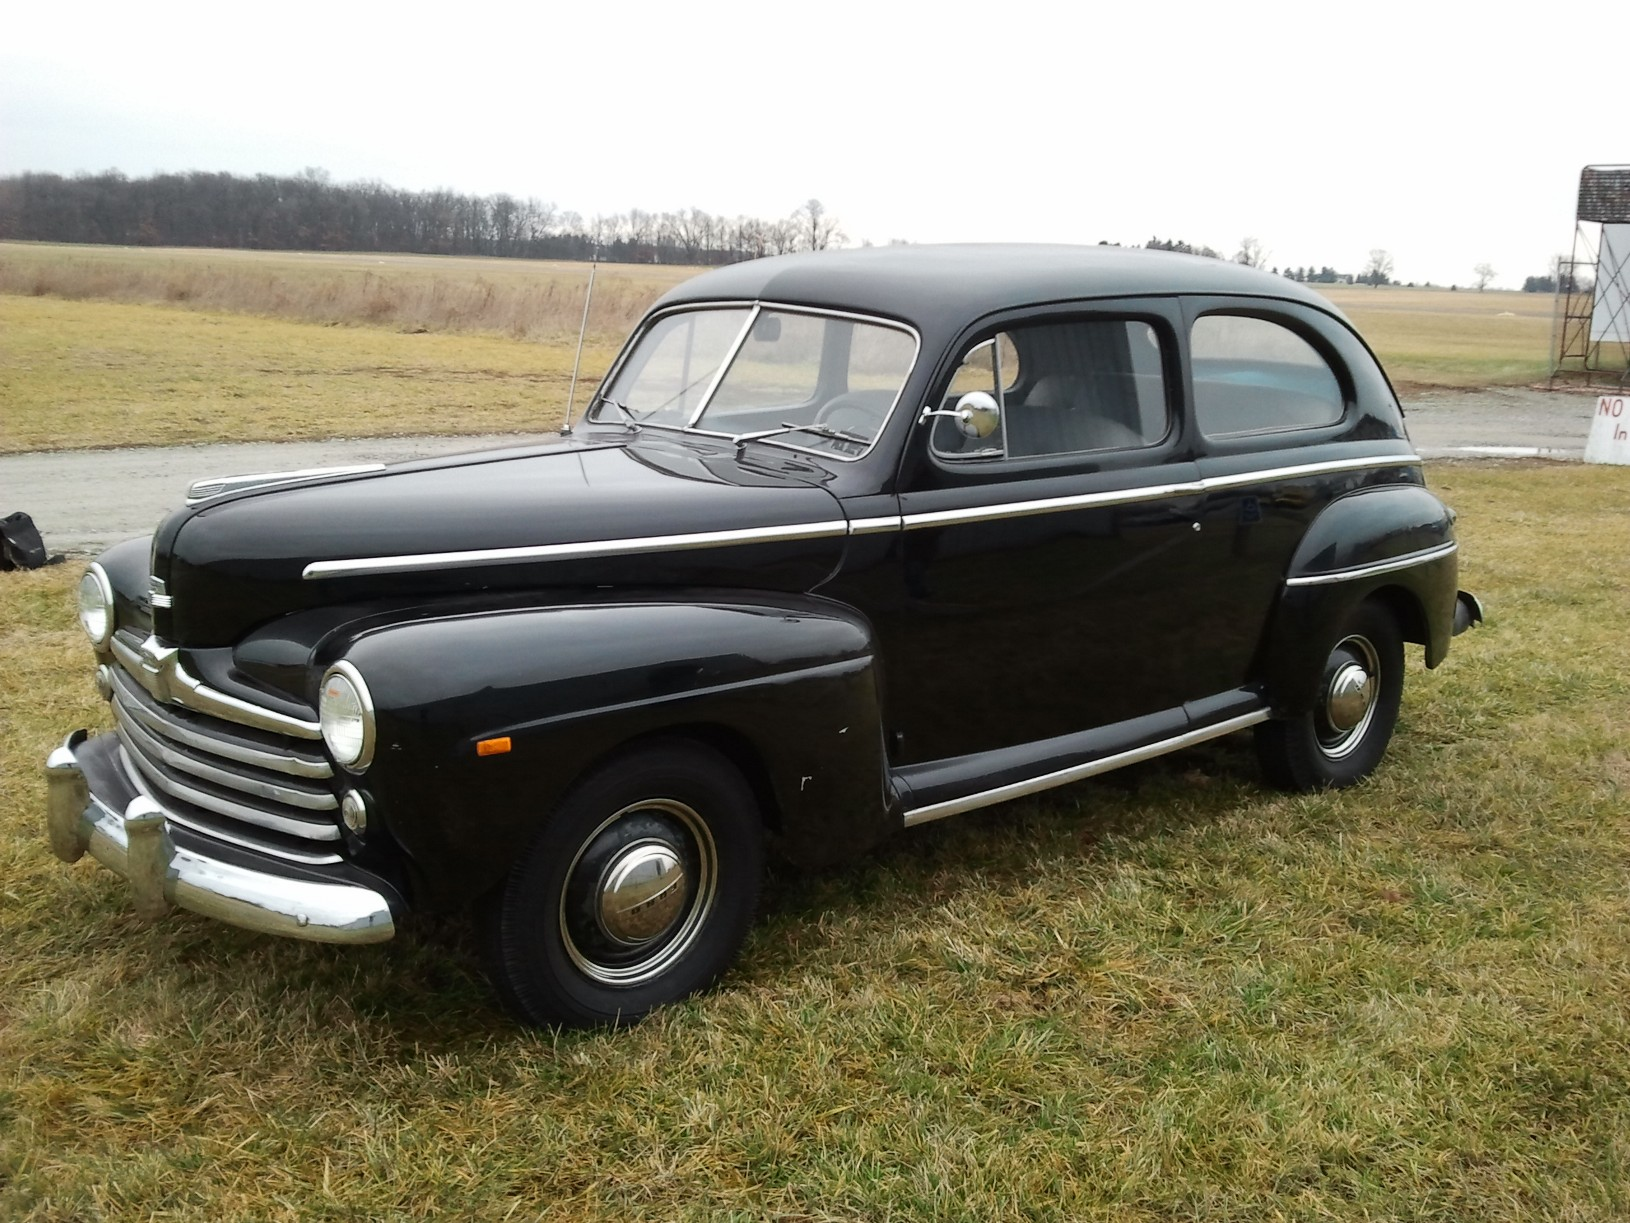 1946 Ford Sedan Maroon Side Angle 1940s Colors And Style 1941 Business Coupe Classic Cars